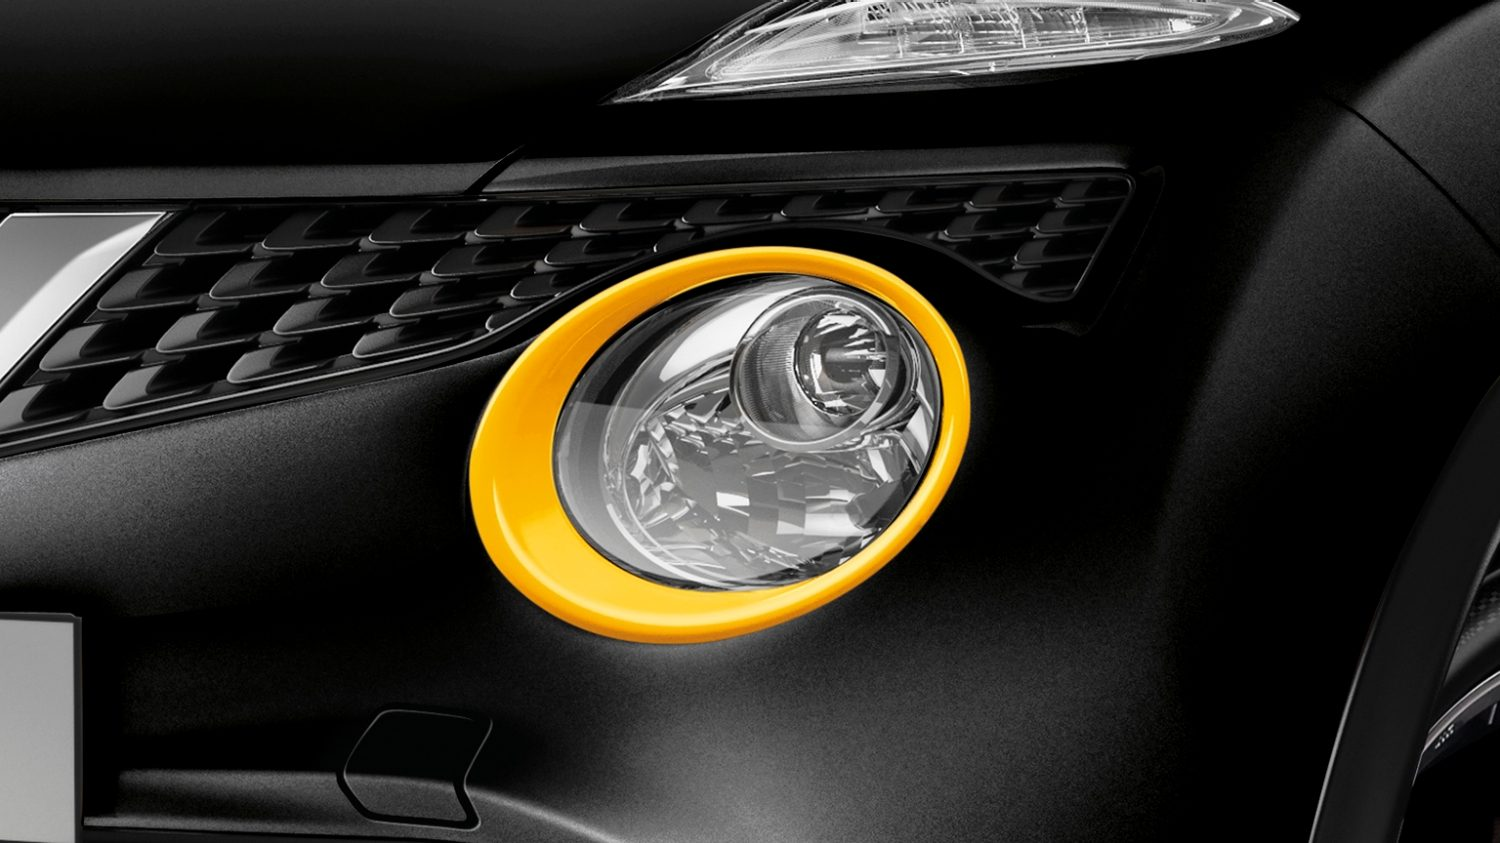 Nissan Juke - Exterior pack - Headlamp finisher